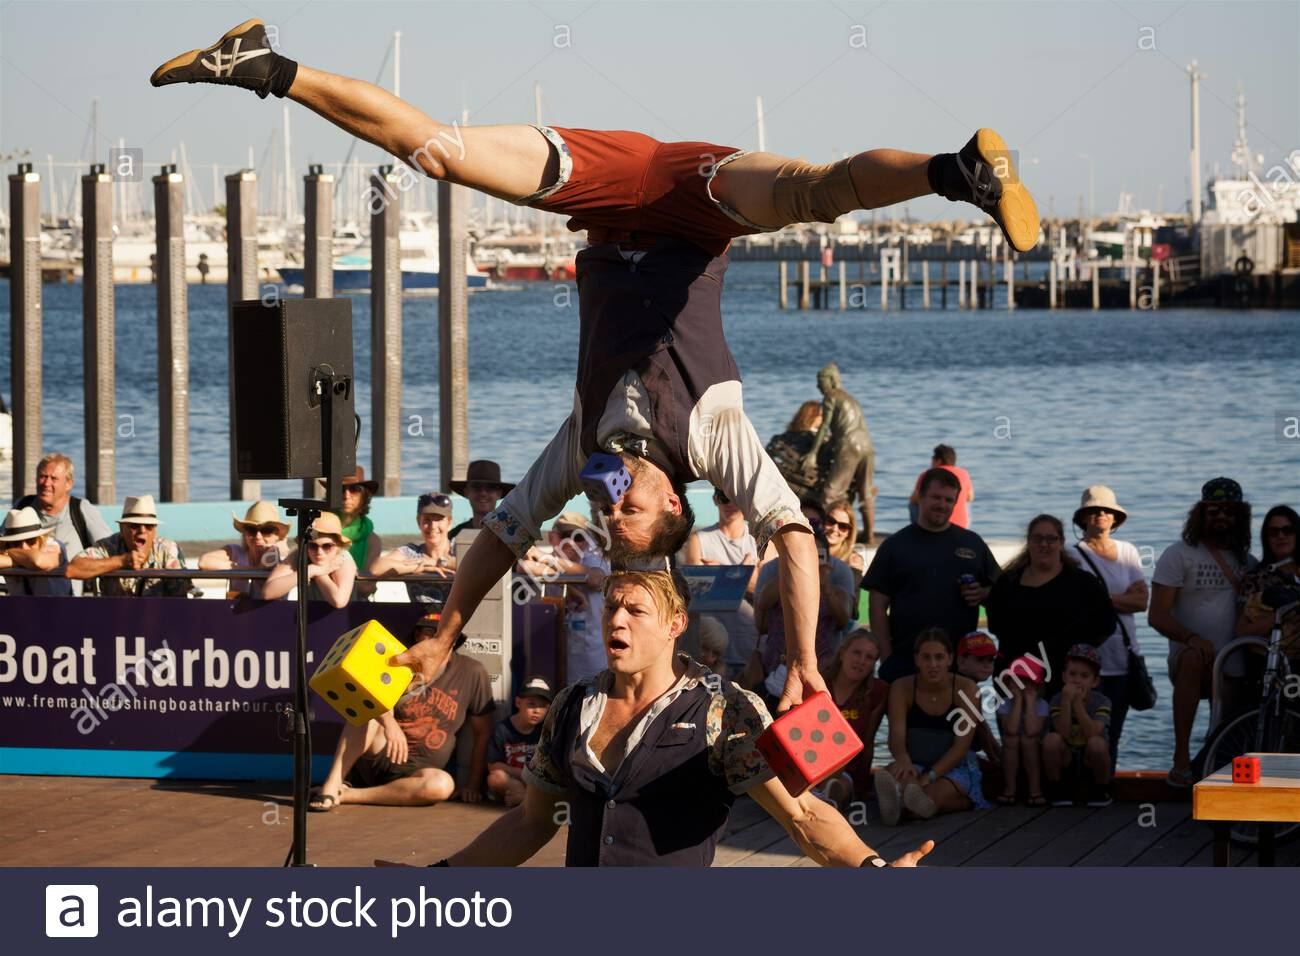 canadian-circus-artists-quatuor-stomp-at-the-2018-fremantle-international-street-arts-festival-western-australia-2ATM926.jpg